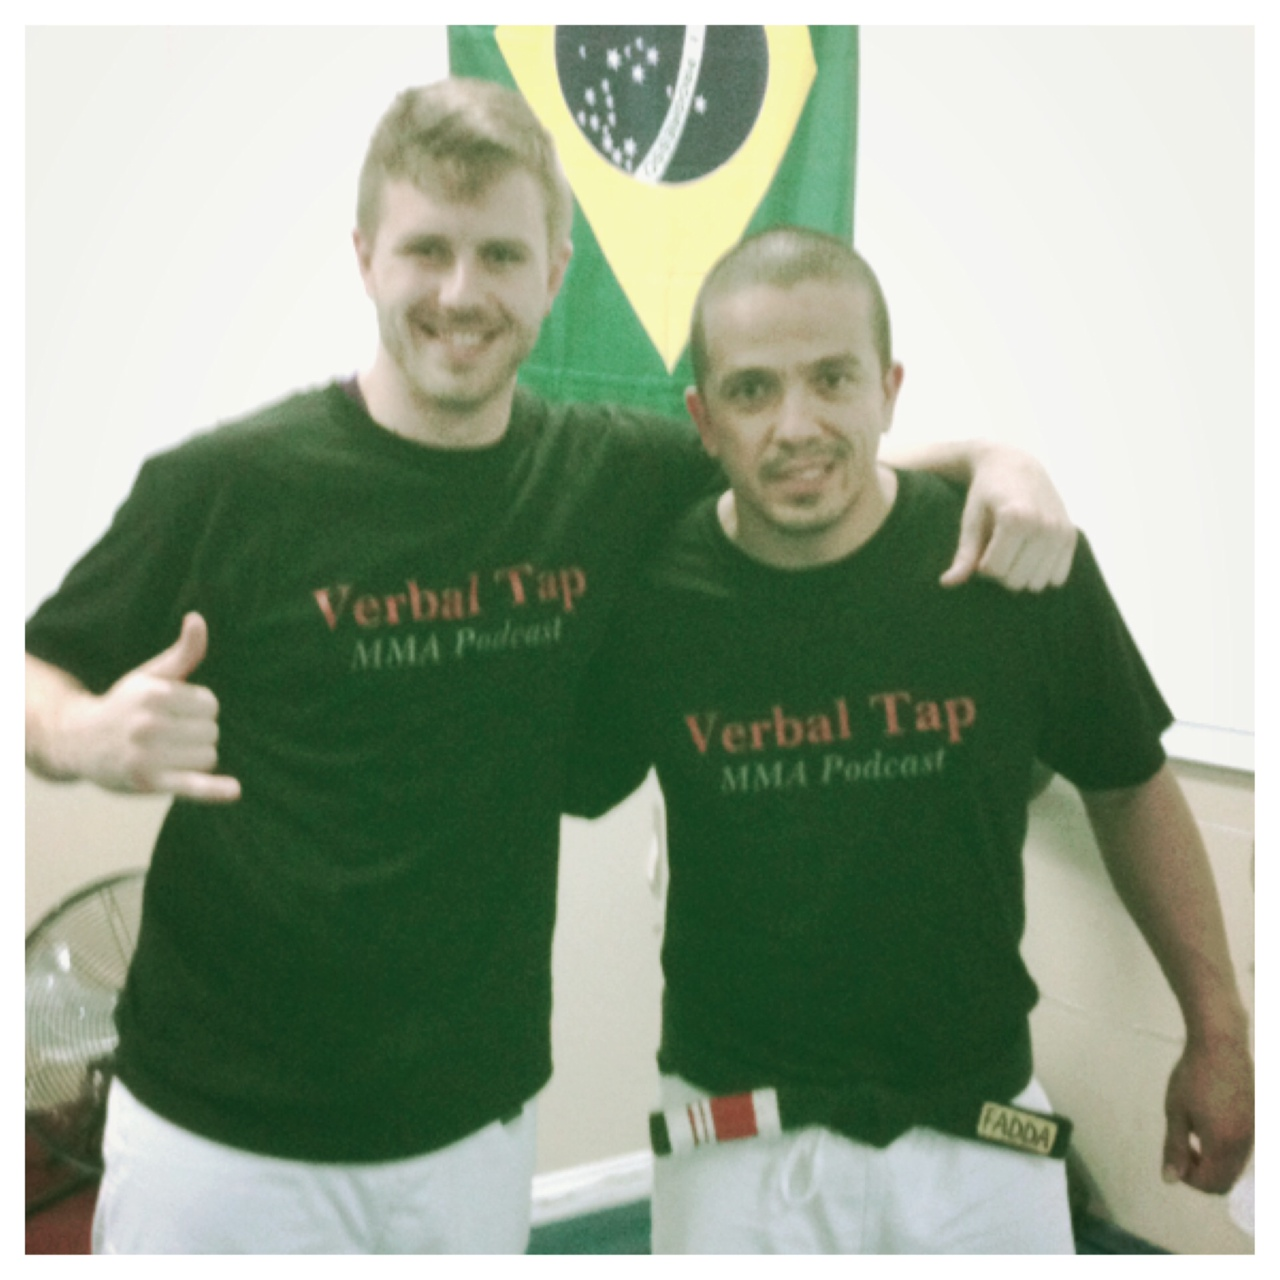 Verbal Tap Co-Host Kevin, and his Instructor Andrew rocking some verbal tap shirts to start training.